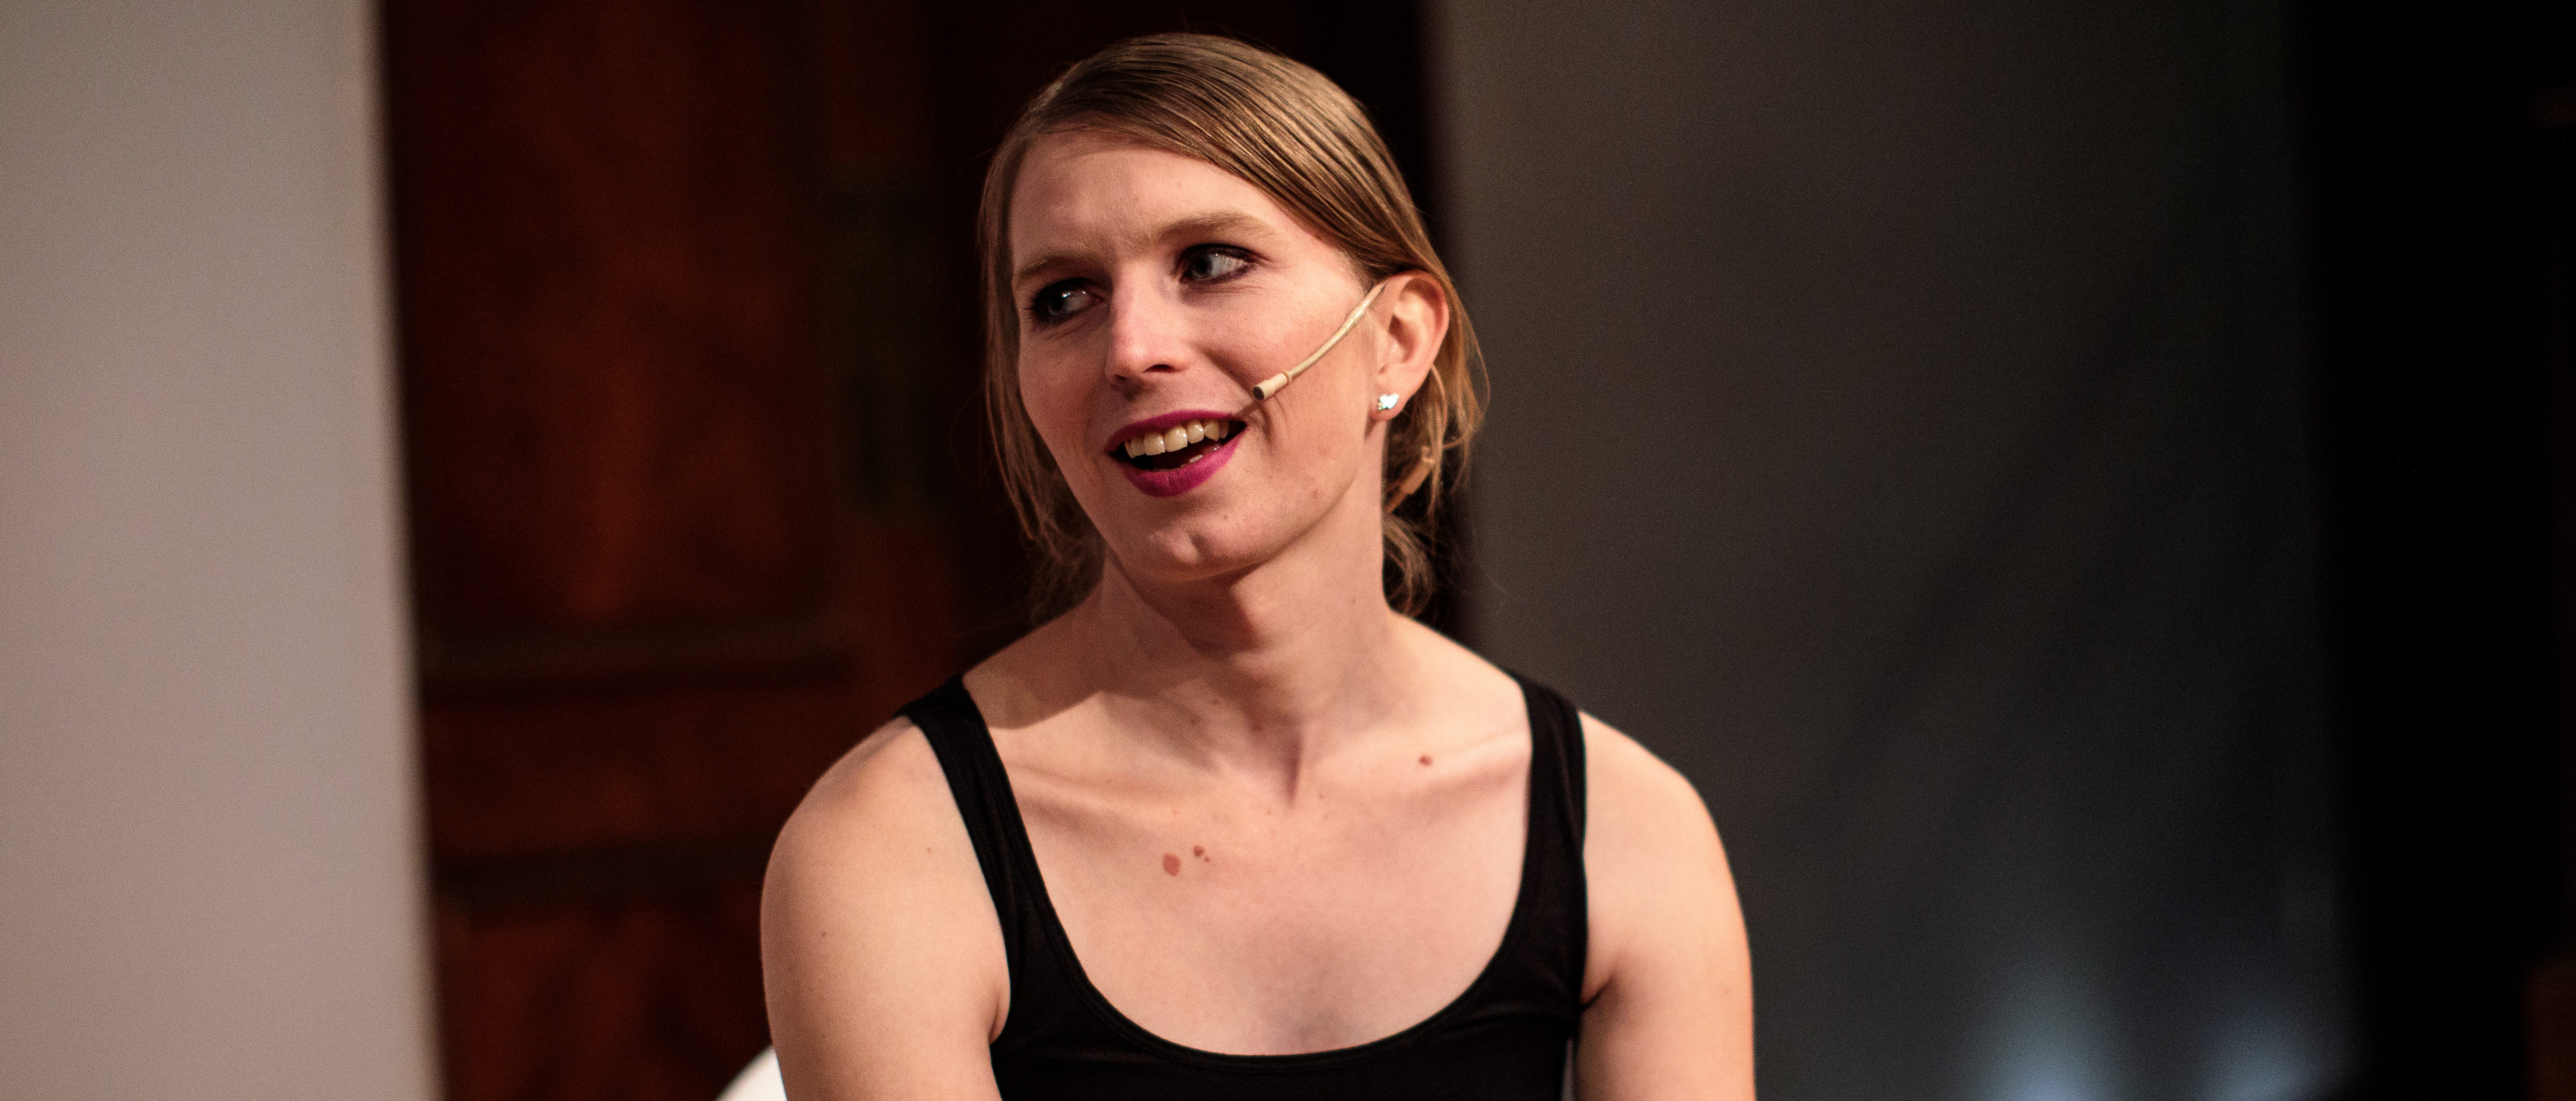 LONDON, ENGLAND - OCTOBER 01: Former American soldier and whistleblower Chelsea Manning speaks with artist and writer James Bridle ahead of an Institute Of Contemporary Arts (ICA) event at the Royal Institution on October 1, 2018 in London, England. US Whistleblower Chelsea Manning appears at a Q&A session on Artificial Intelligence, the state of the data economy and the role of AI and algorithms in public policy among other subjects. Later she will attend a dinner held in her honour. (Photo by Jack Taylor/Getty Images)